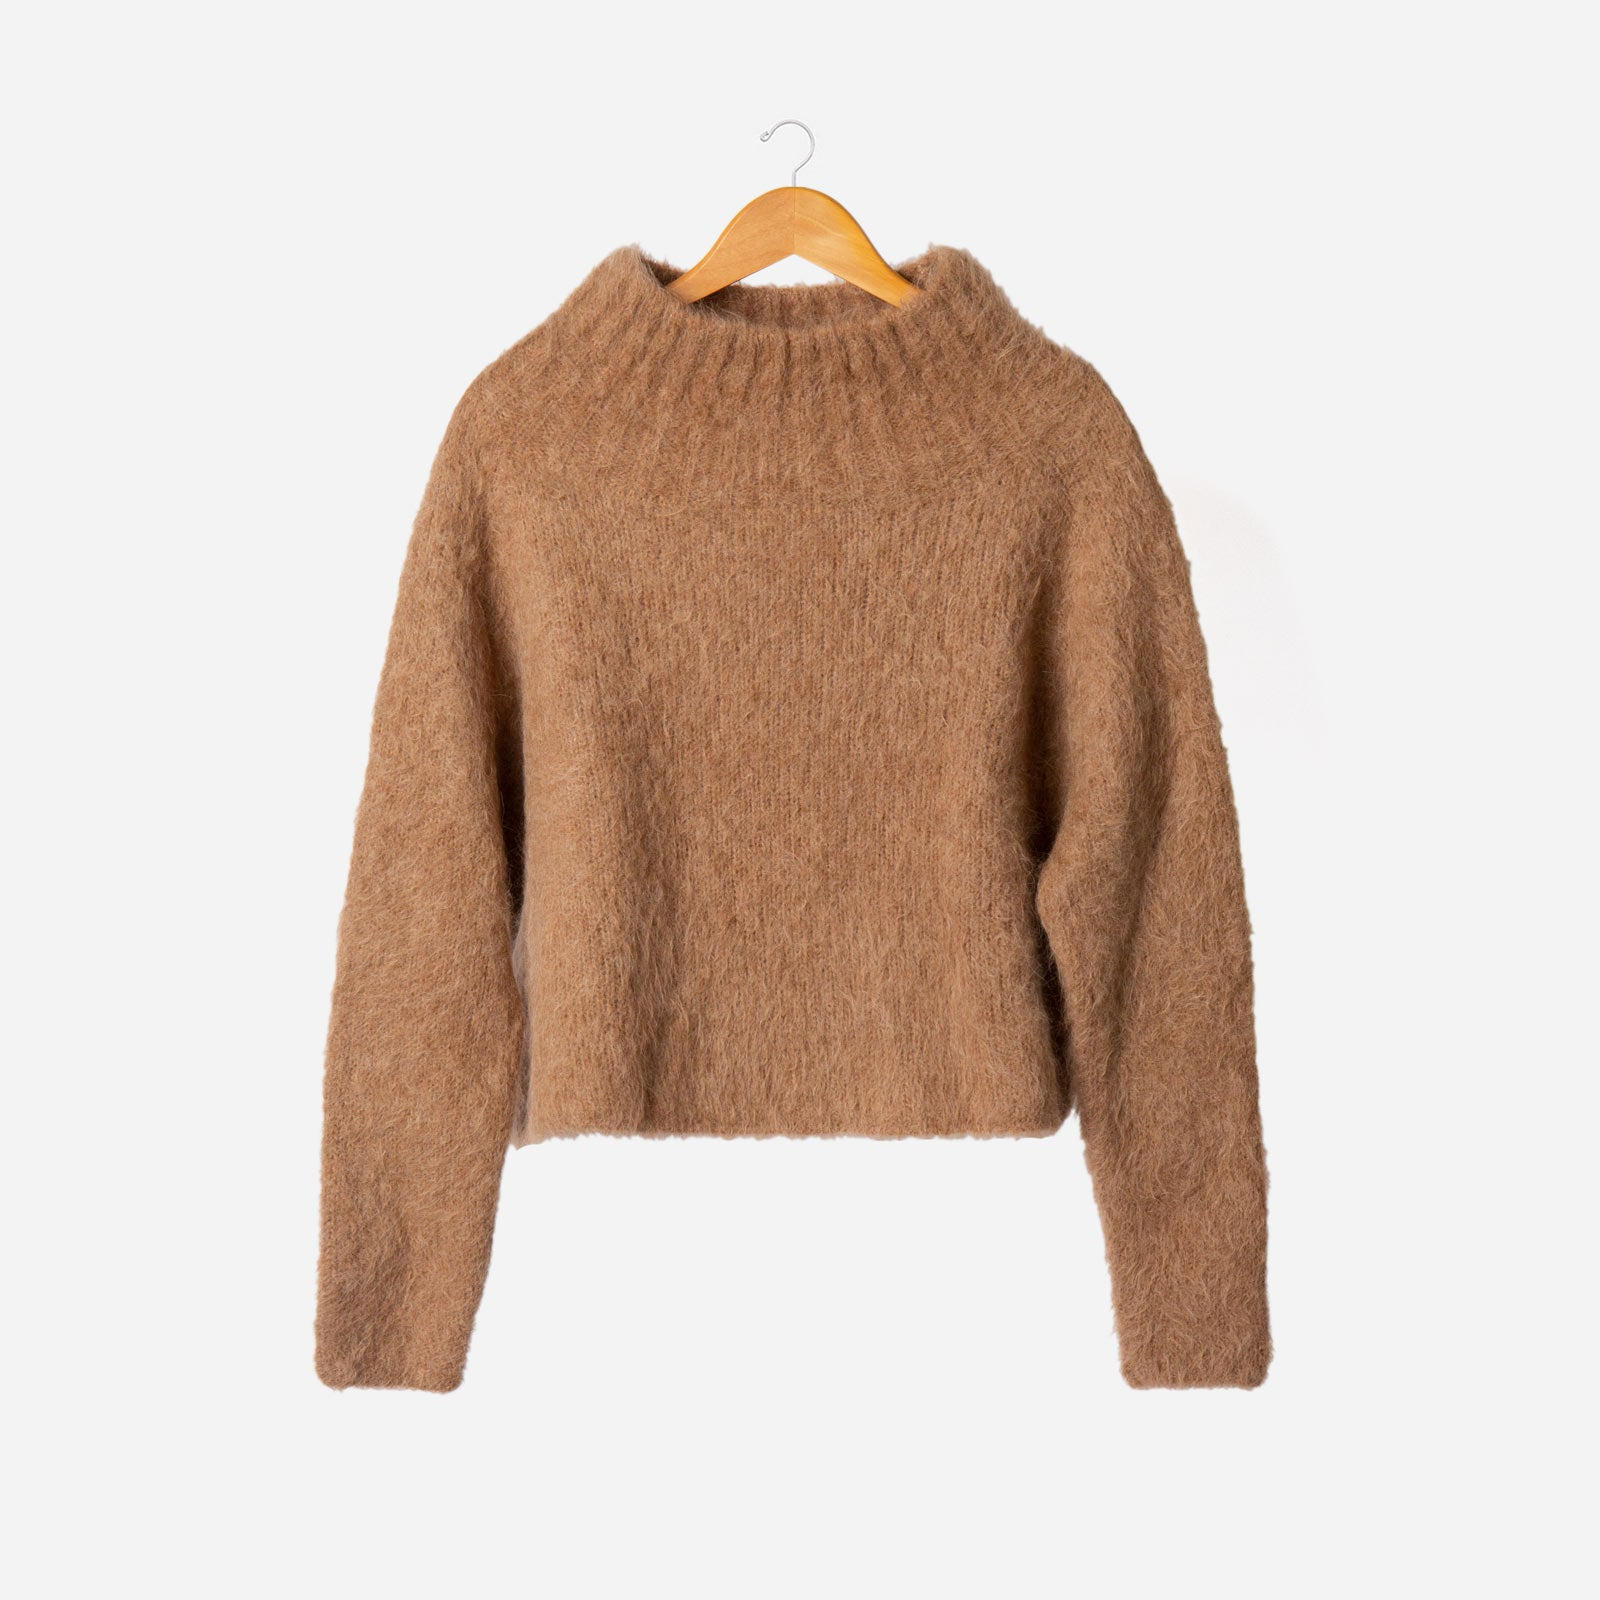 Audrey Funnel Neck Sweater Camel - Frances Valentine